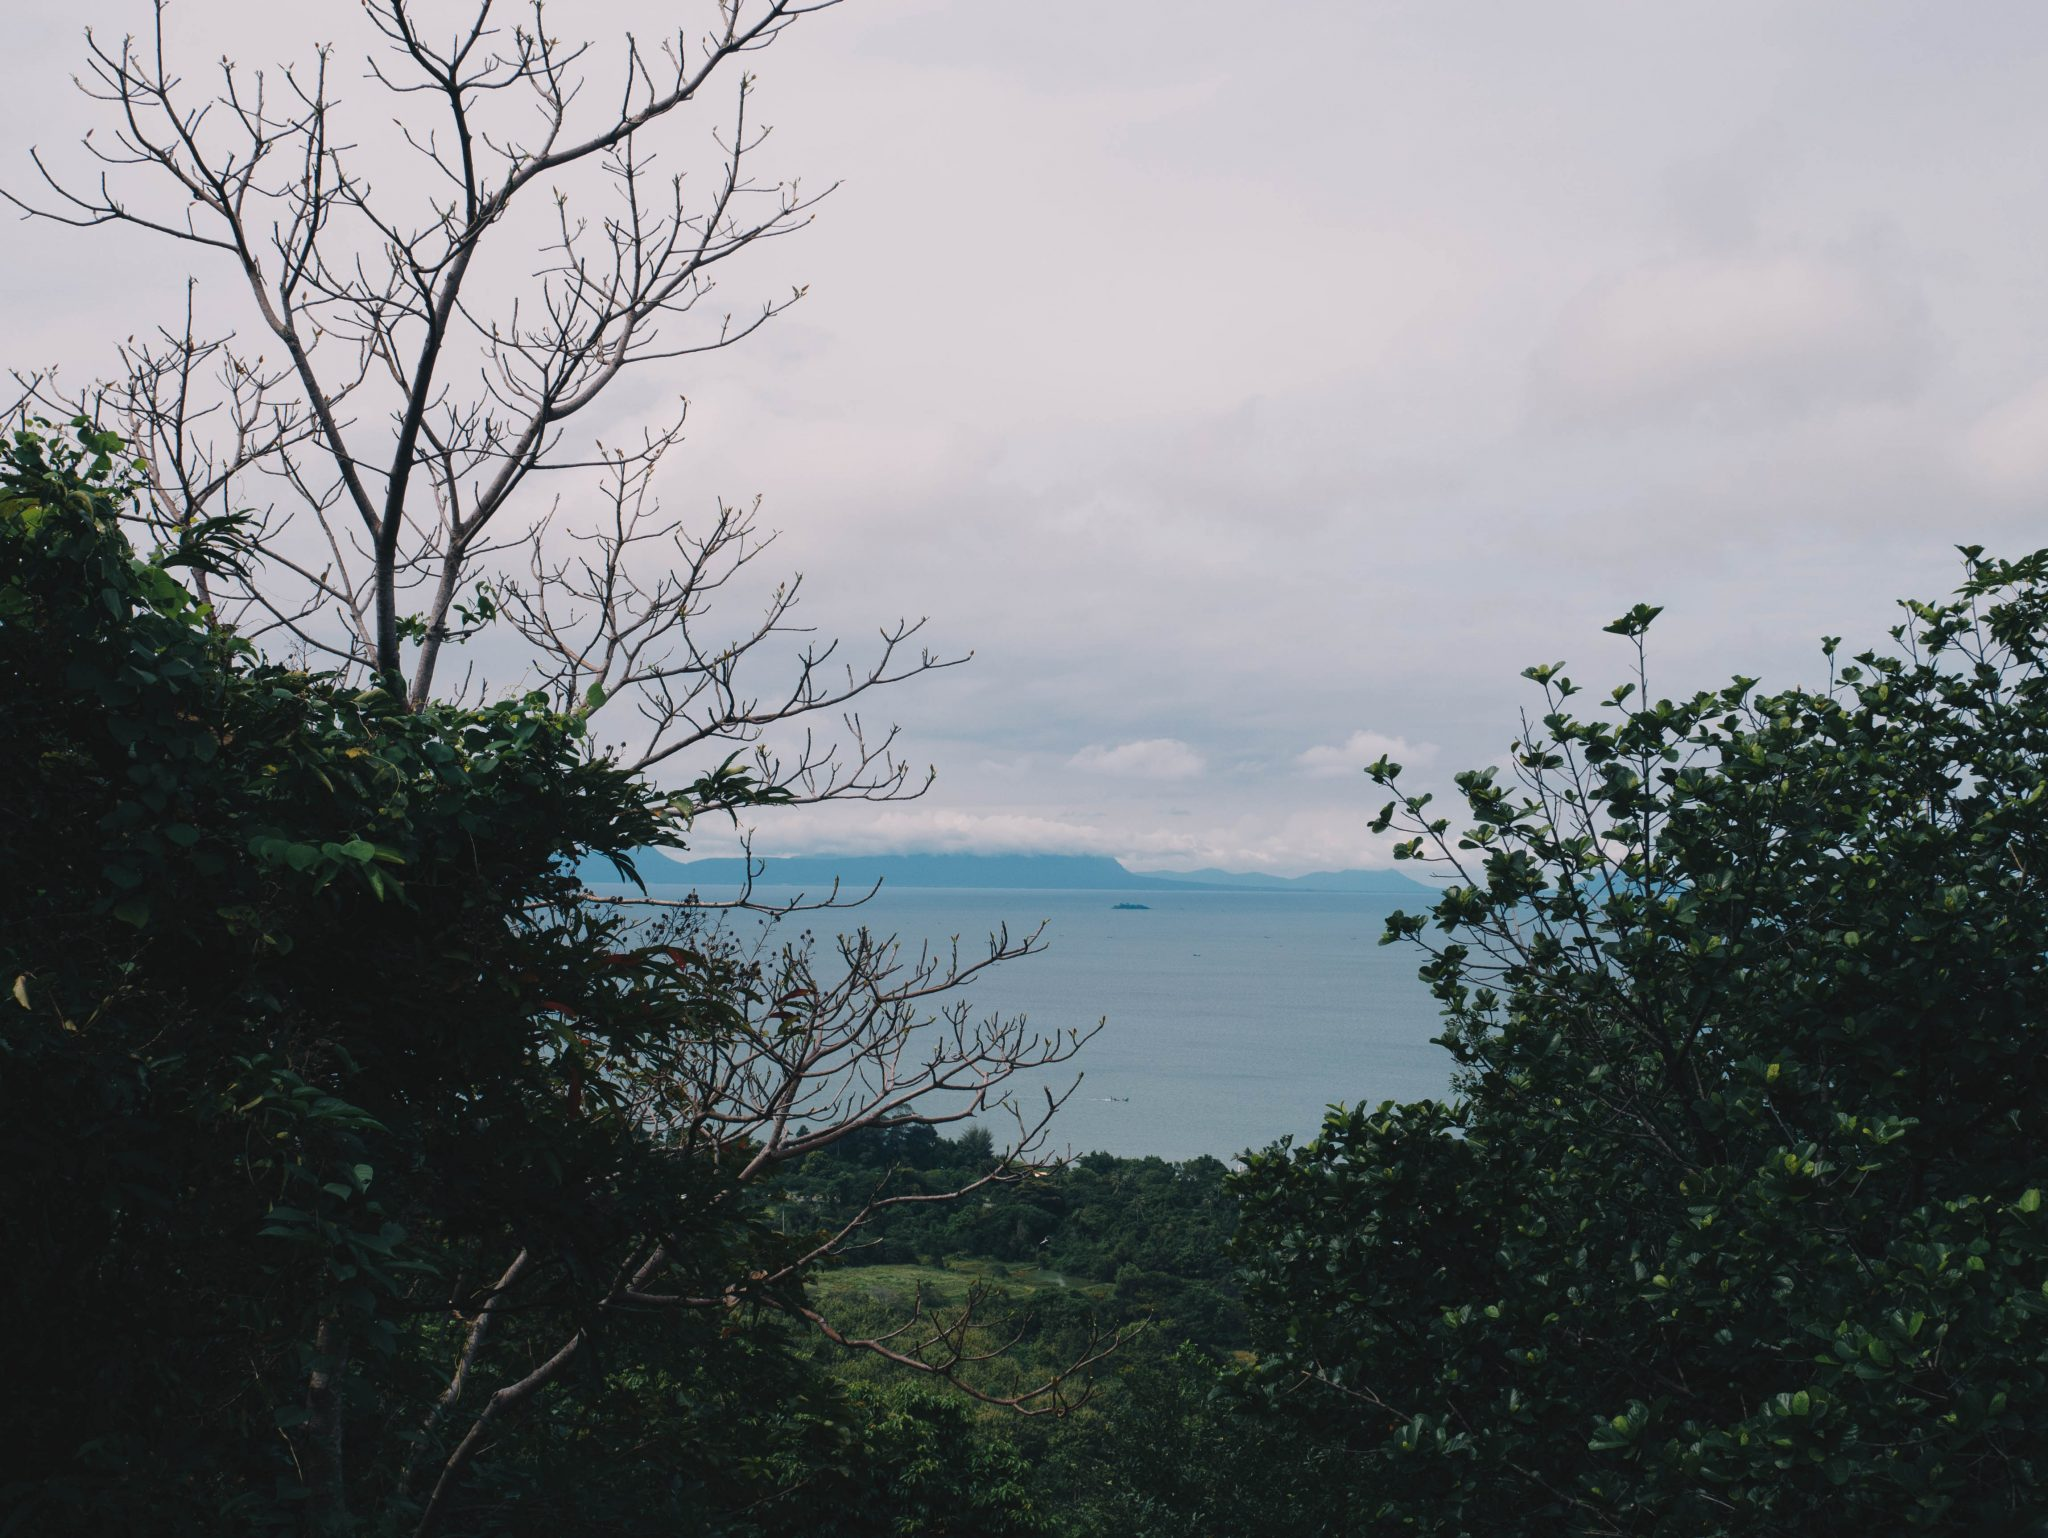 Kep National Park Viewpoint